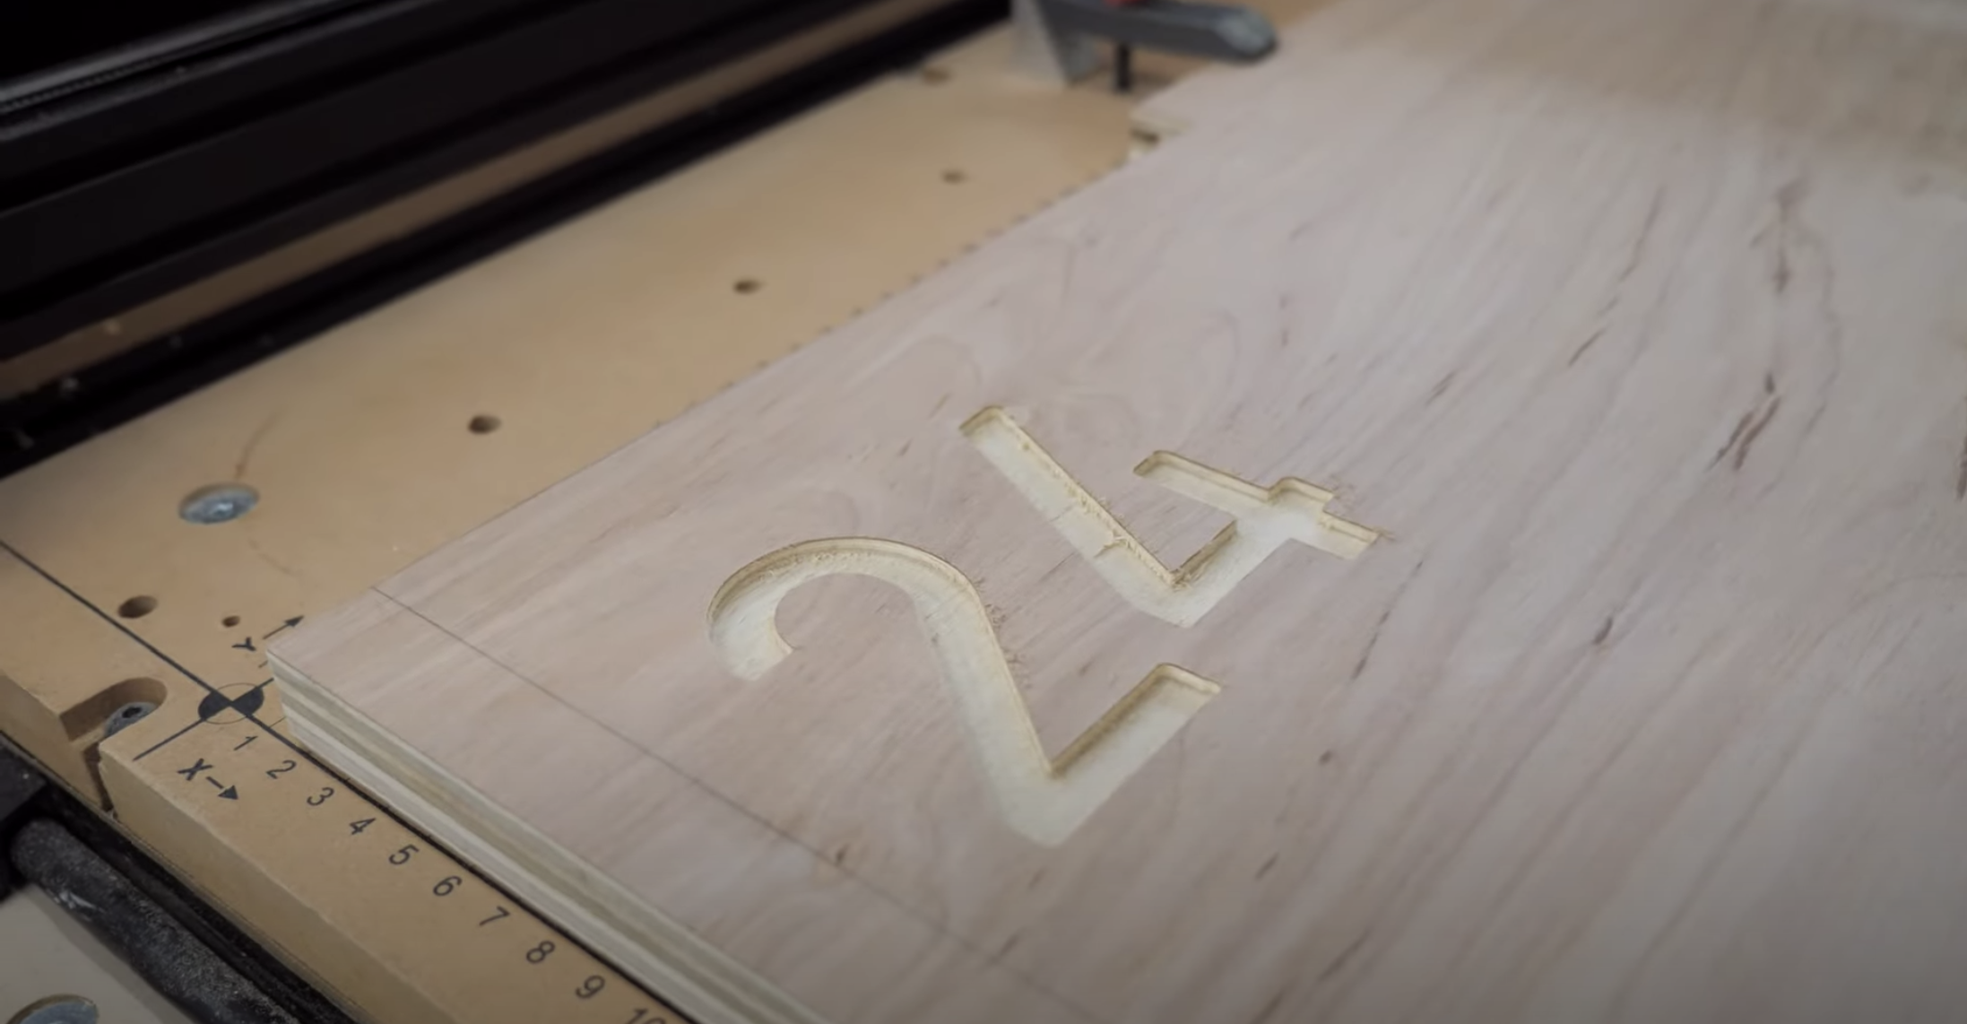 Customizing the Box With the X-Carve